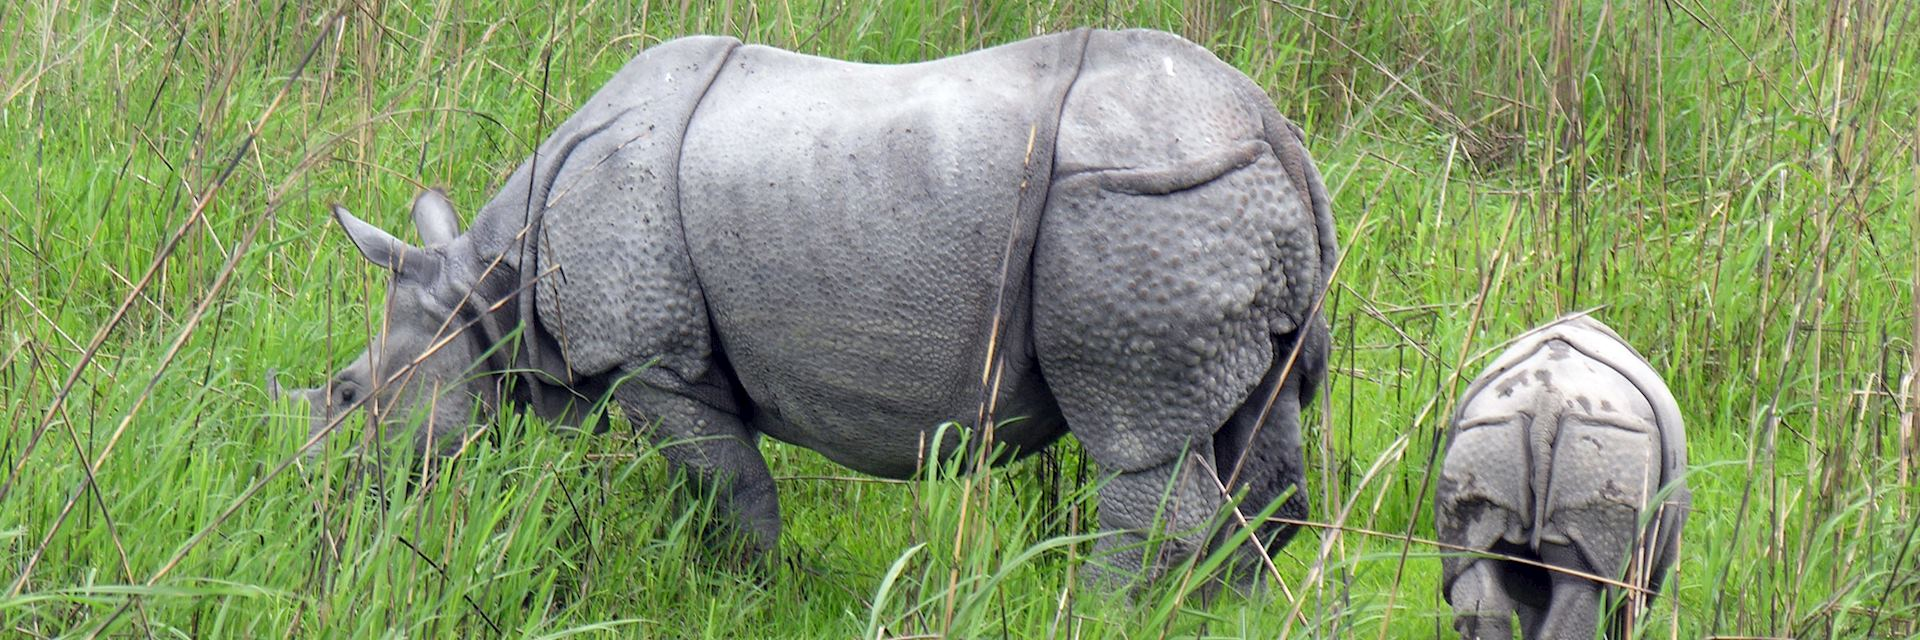 One-horned rhino grazing in Kaziranga National Park